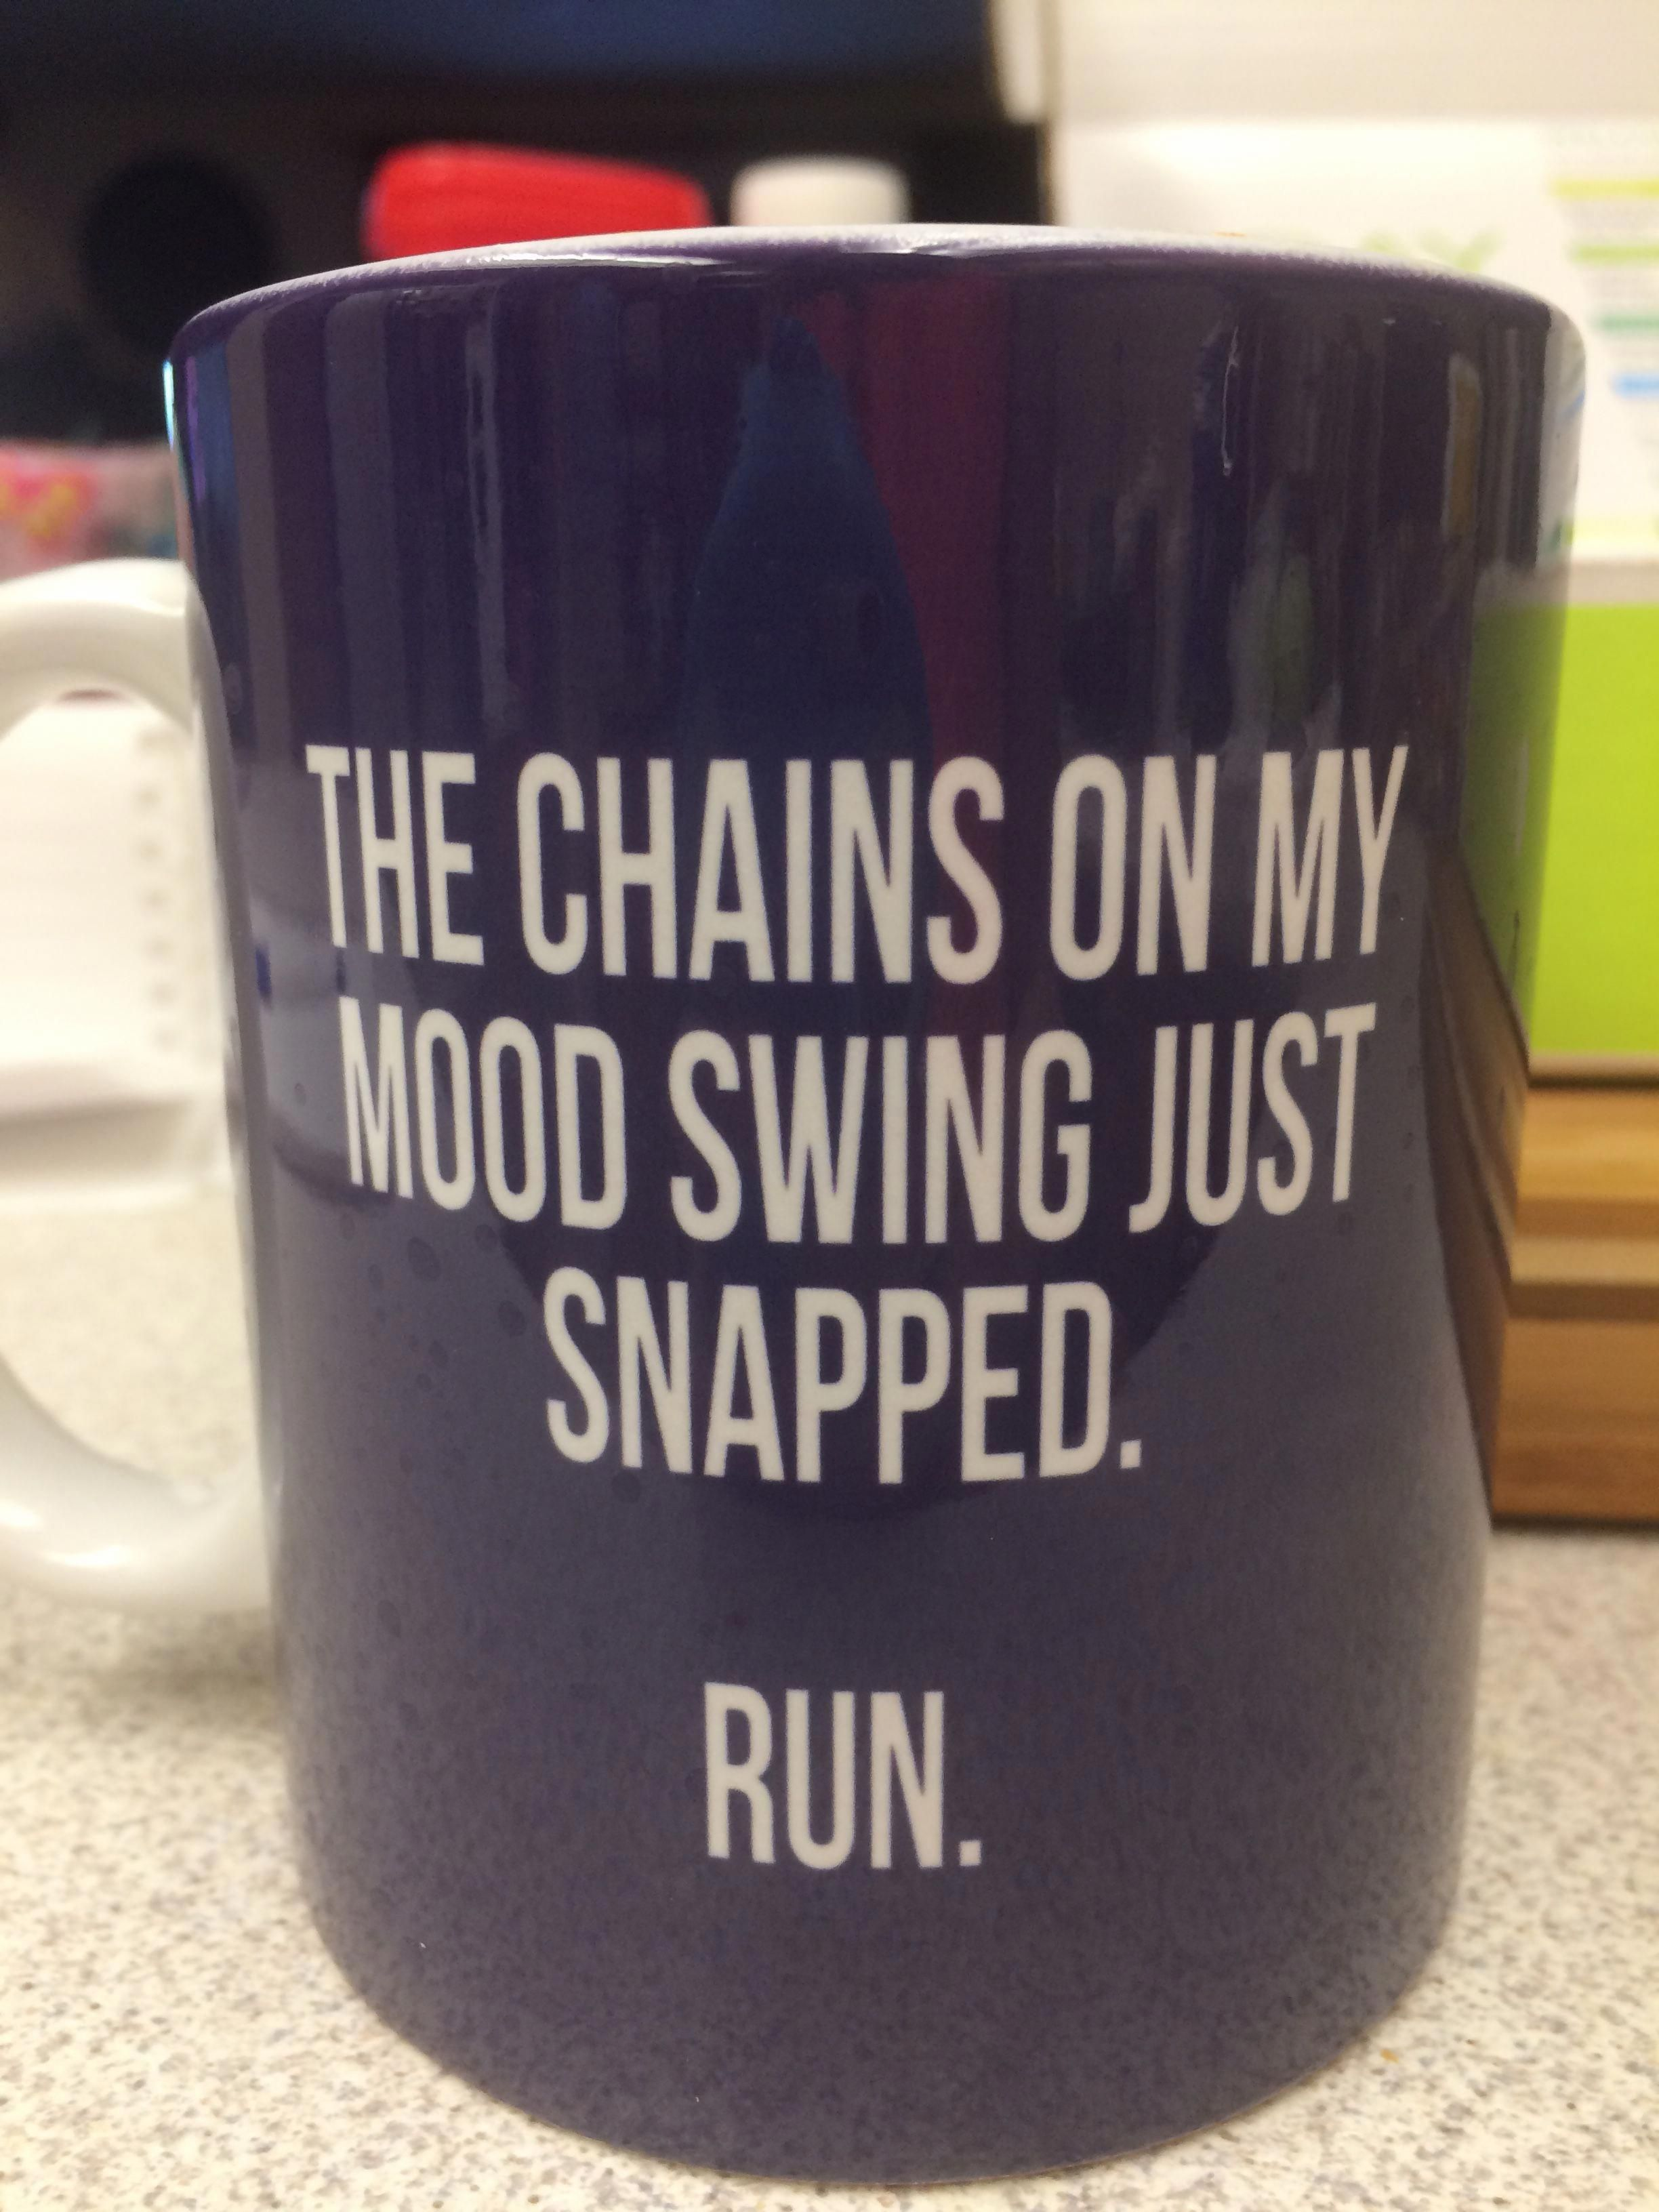 13 Funny Coffee Mugs Prefect for Relaxing at Office - Cool Things to Buy 247 #funnycoffeemugs